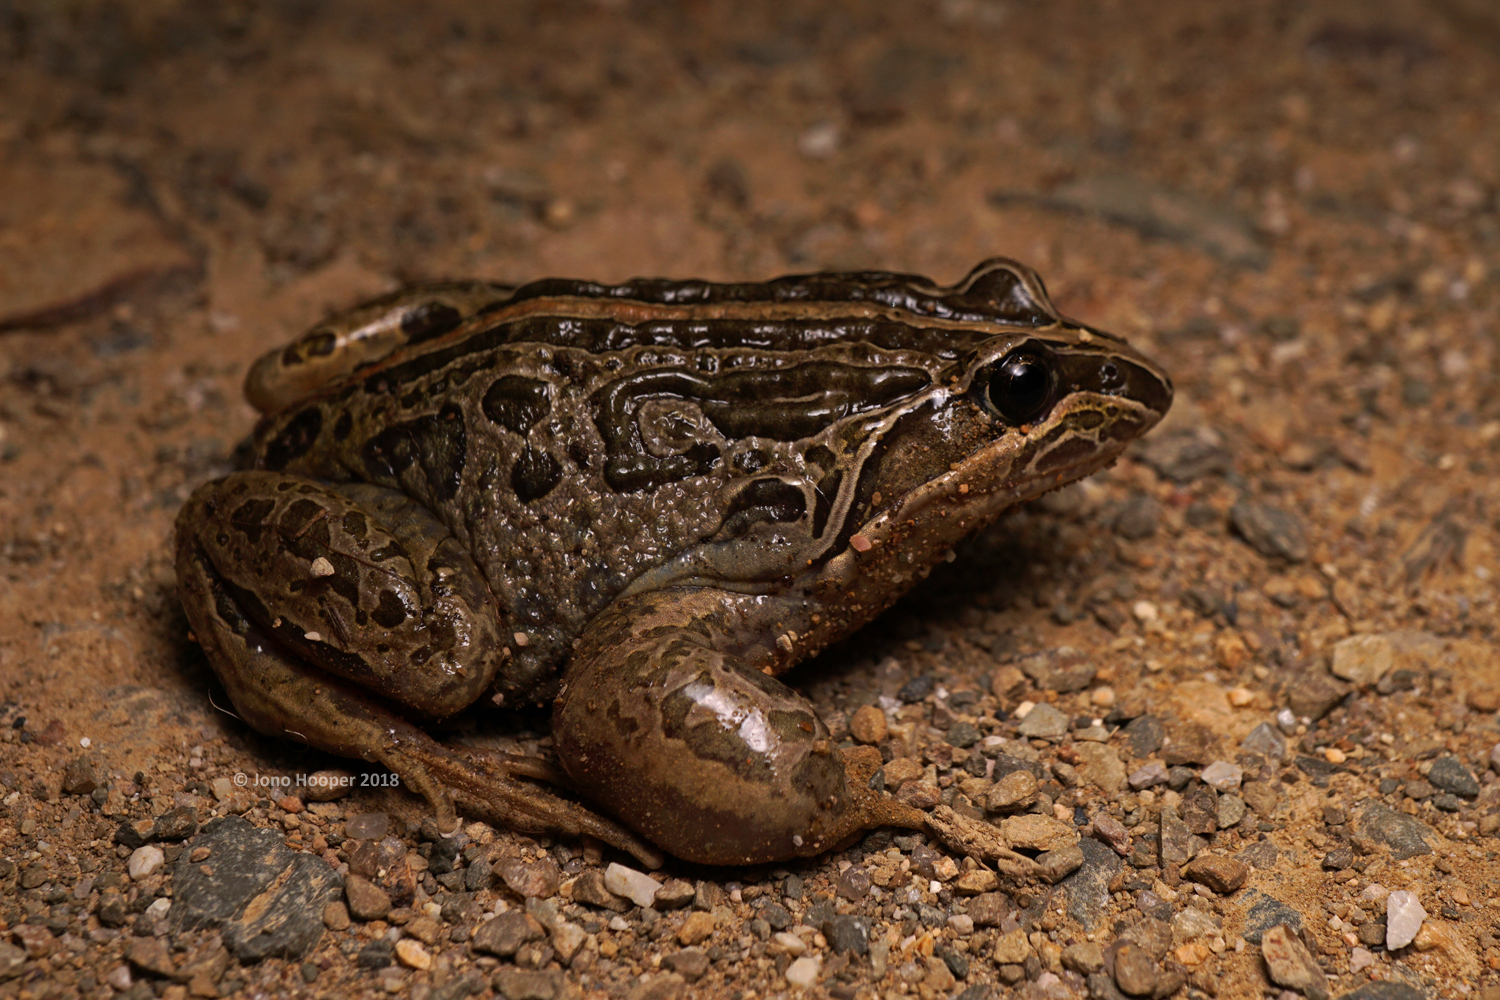 Striped Marshfrog (Limnodynastes peronii). Check out the biceps on this rig!